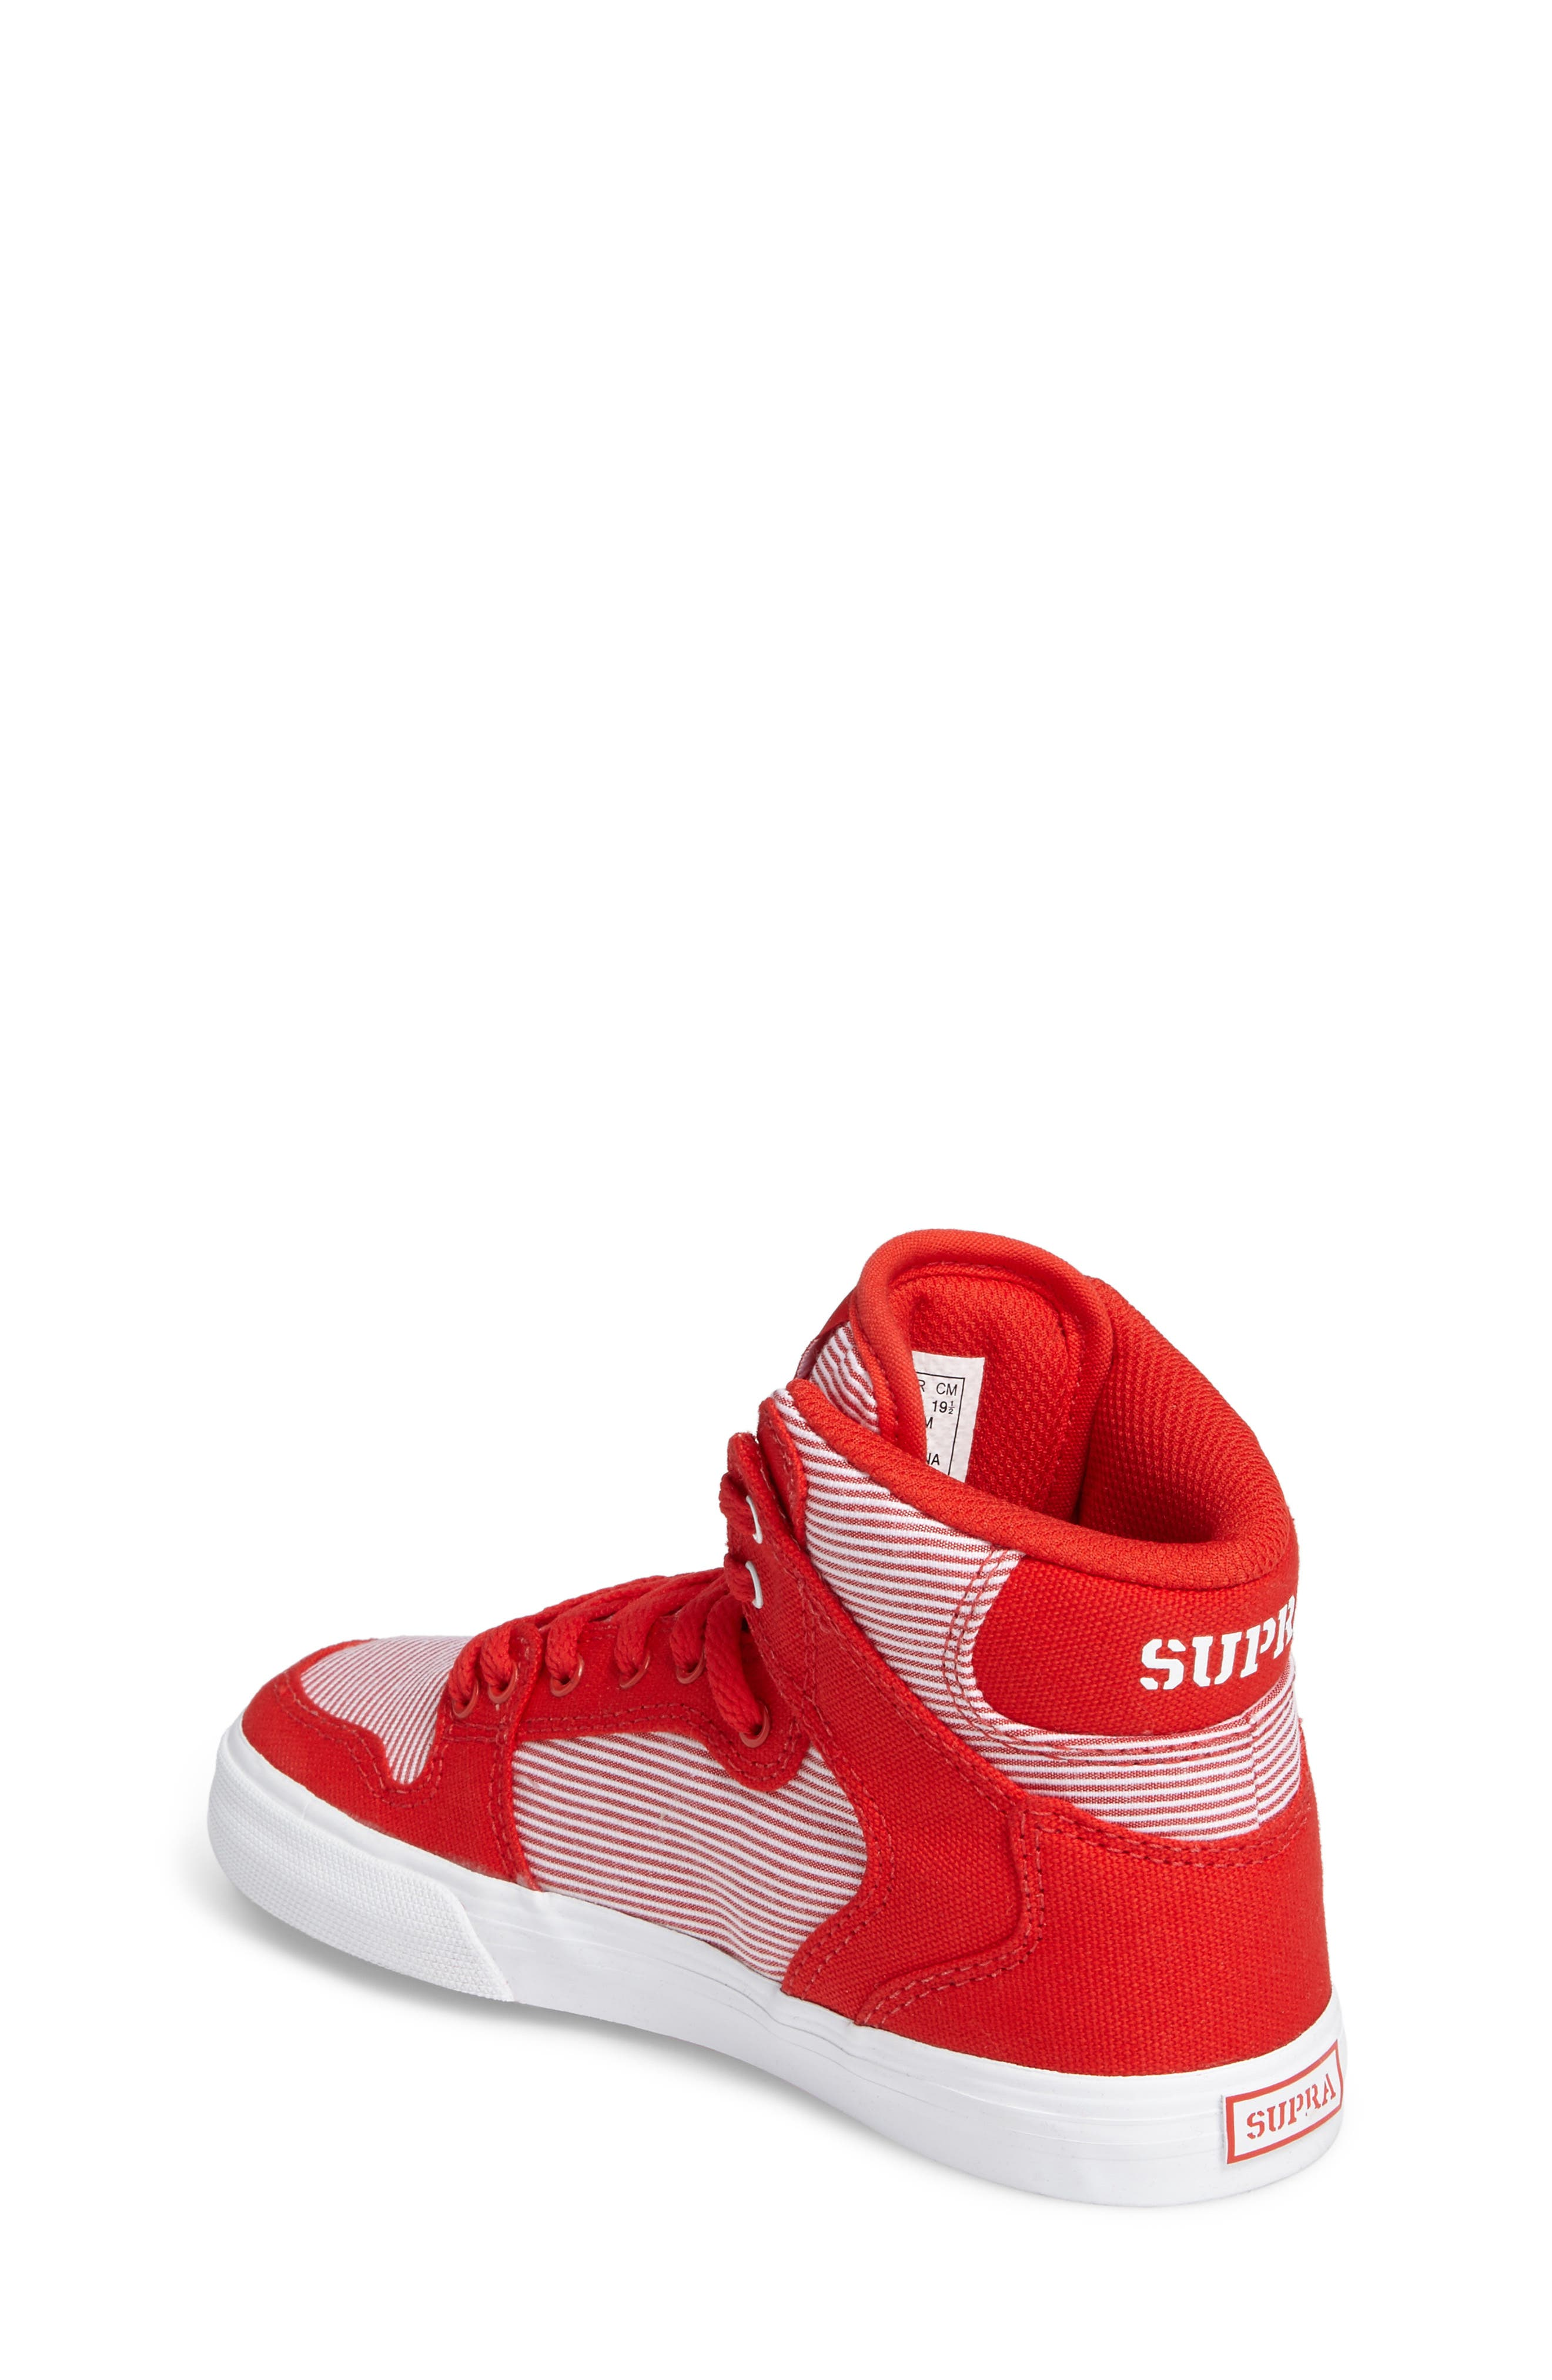 Vaider High Top Sneaker,                             Alternate thumbnail 2, color,